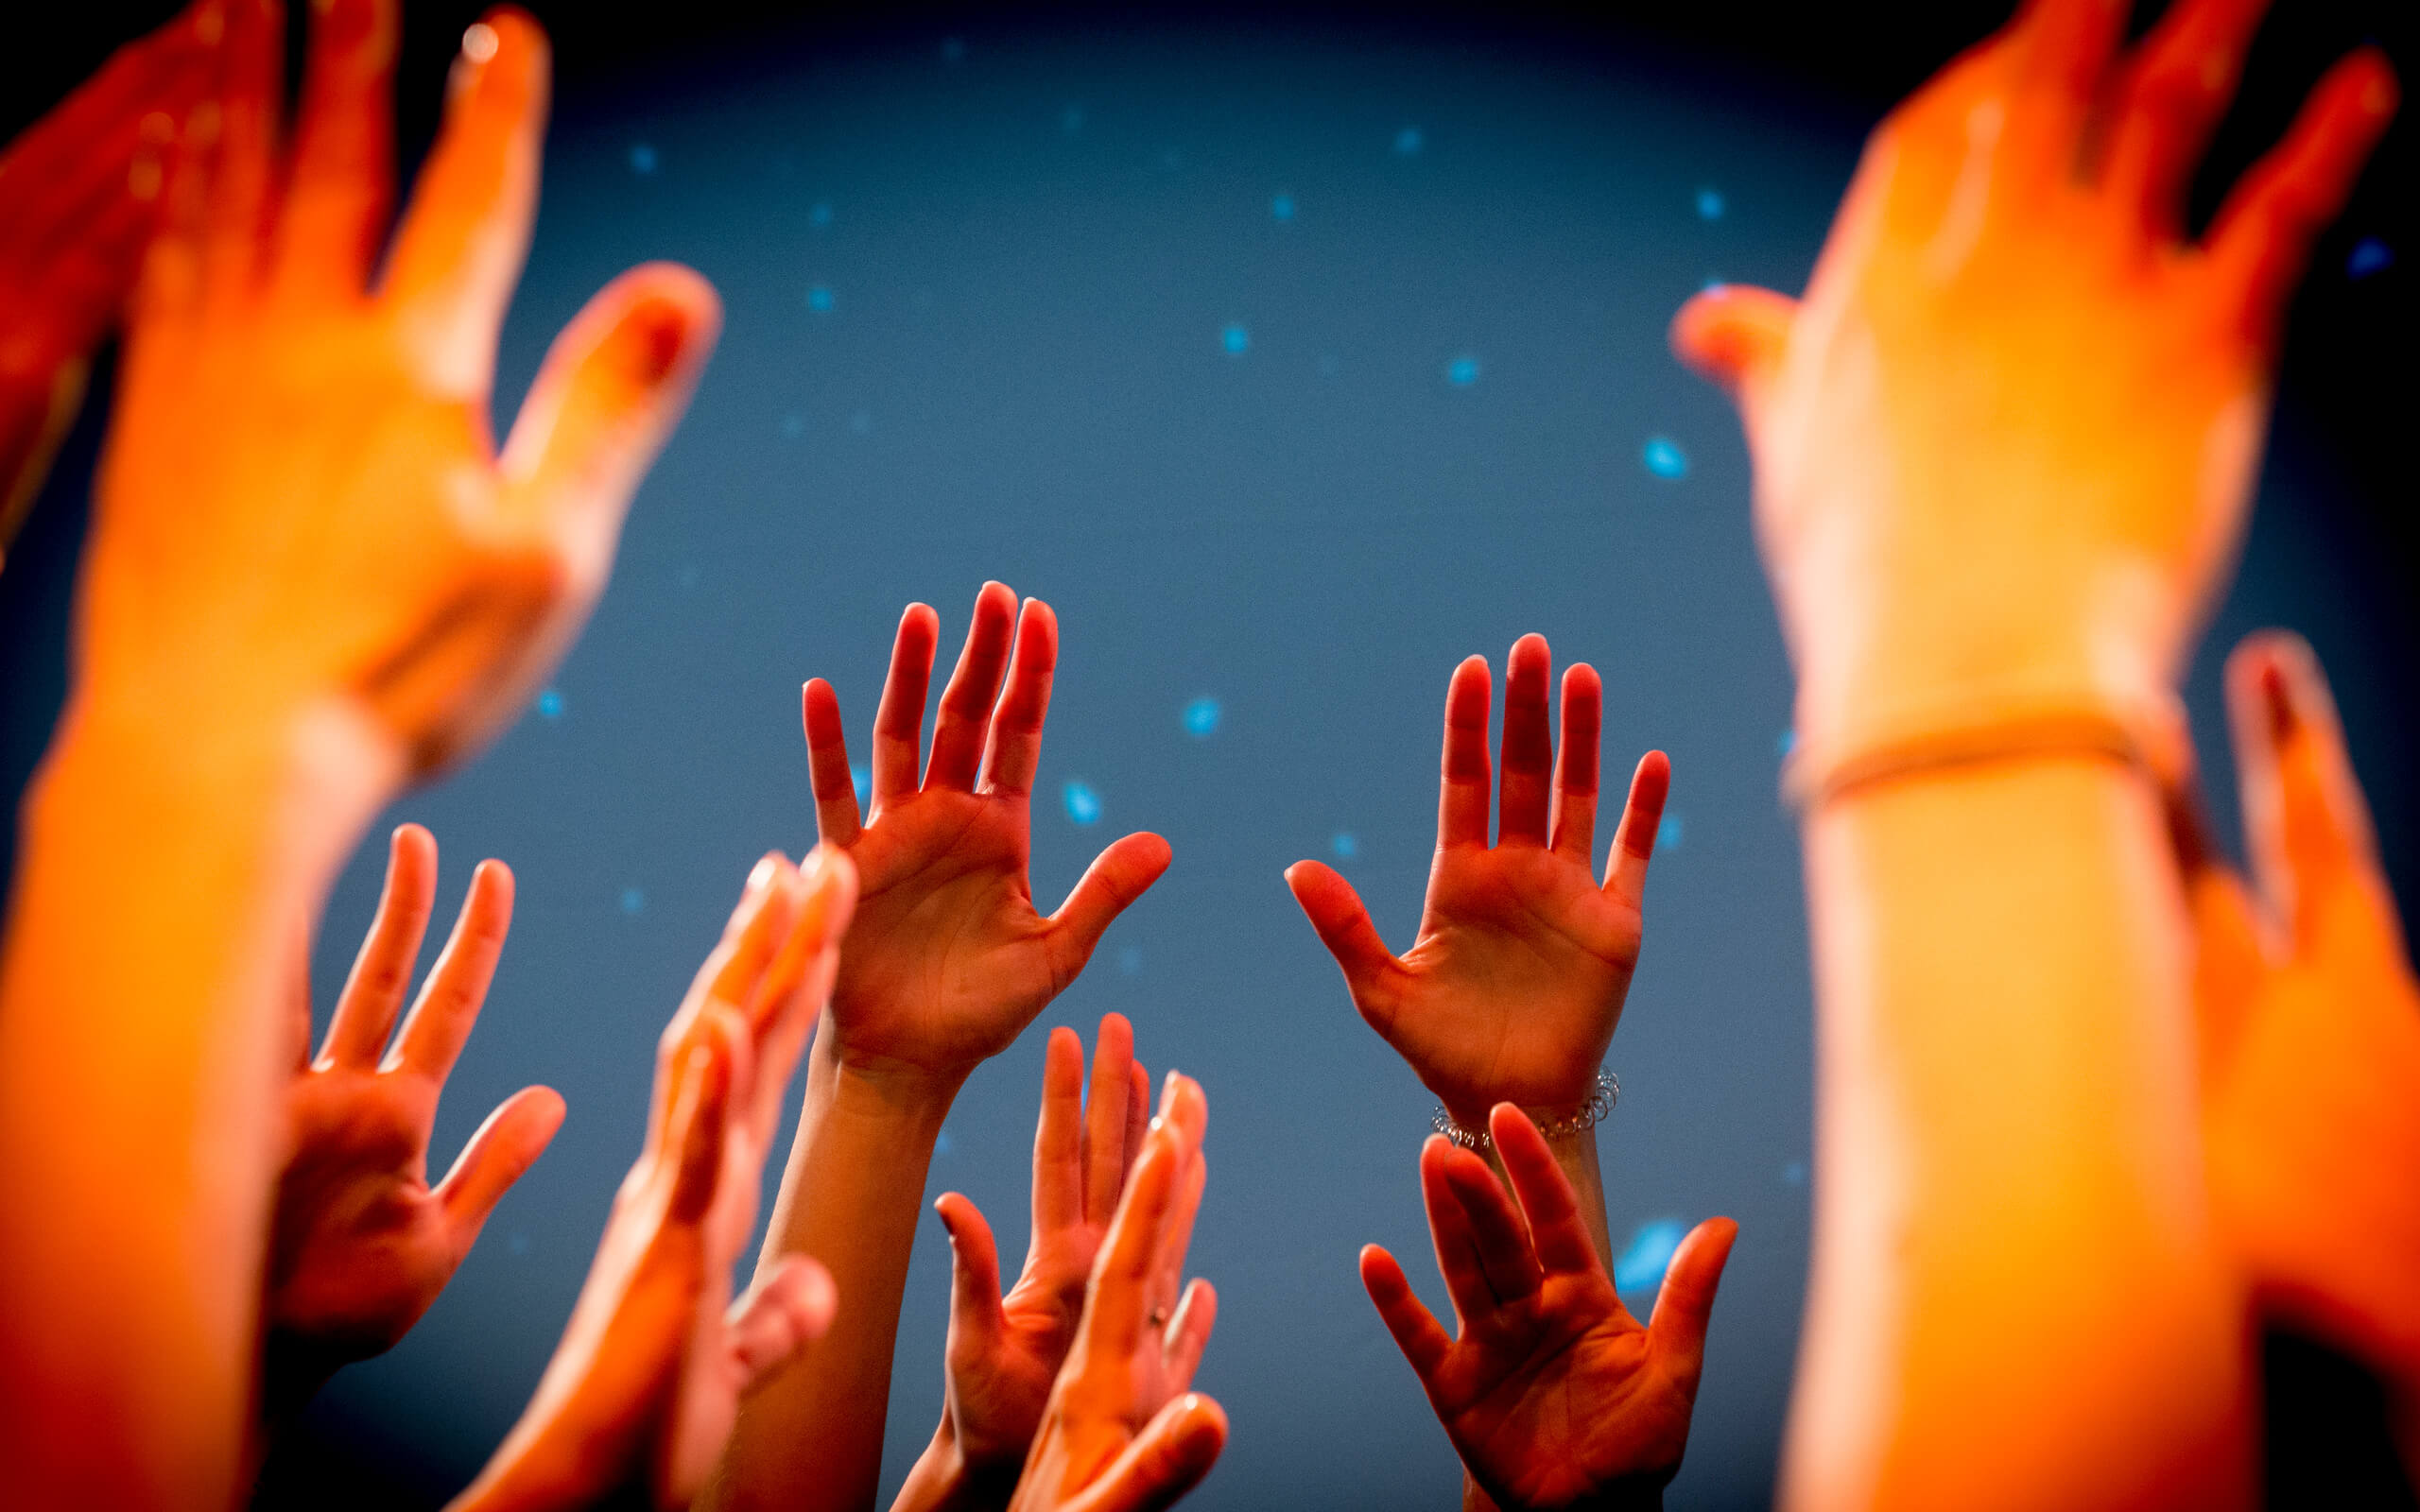 Abstract hands raised